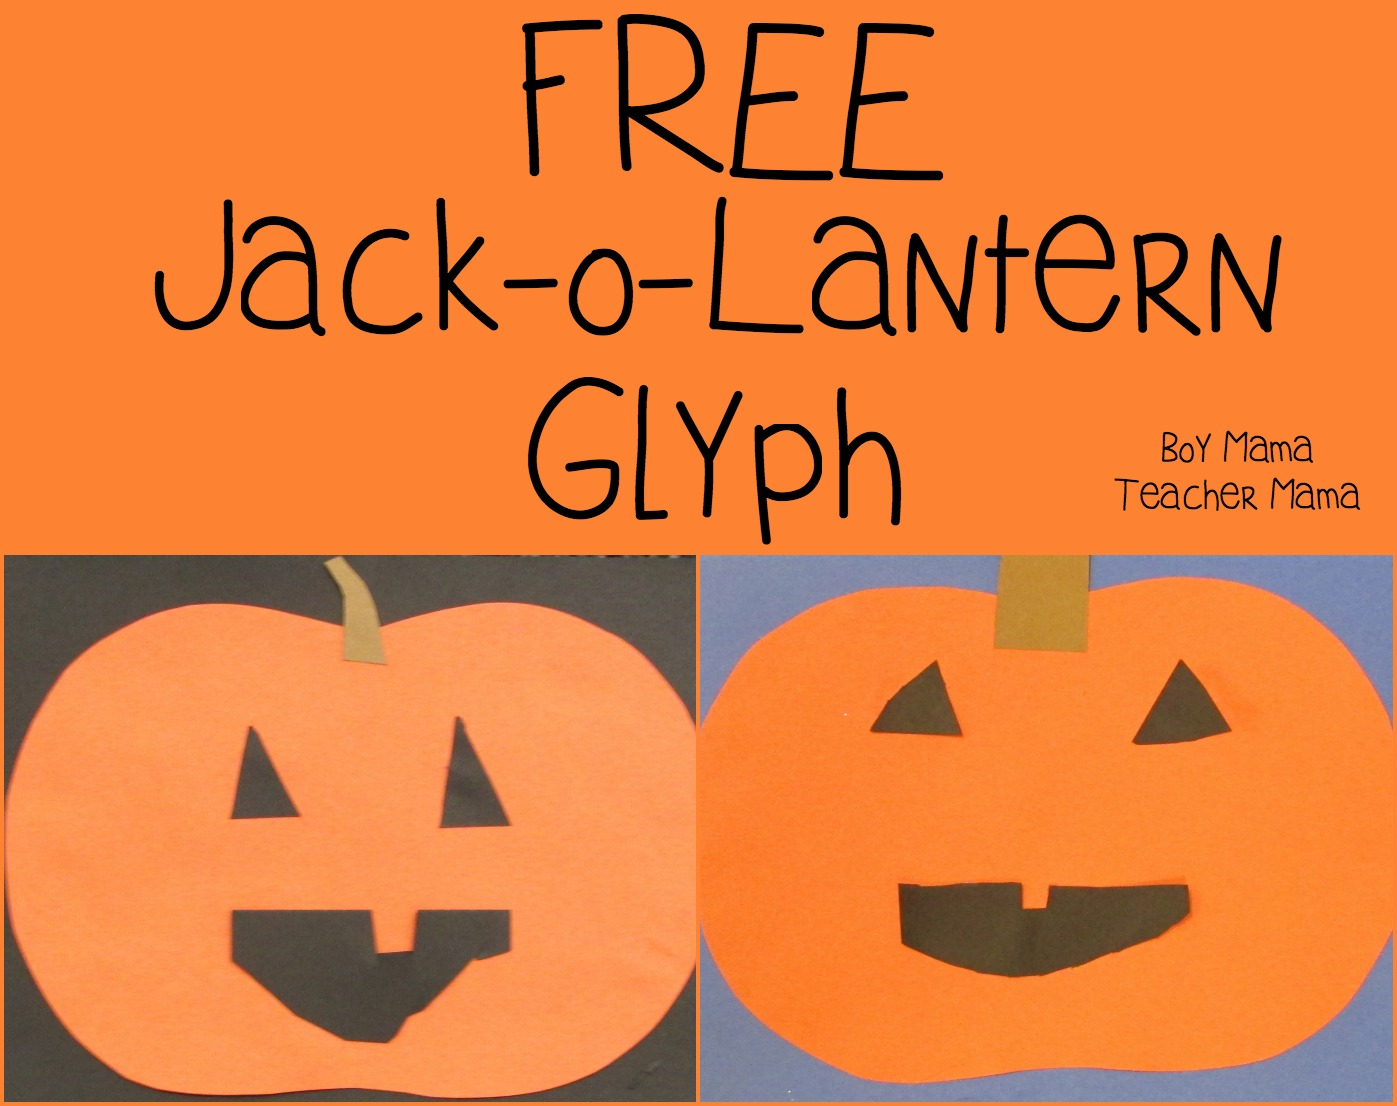 boy mama teacher mama free jack o lantern glyph featured - Halloween Glyphs